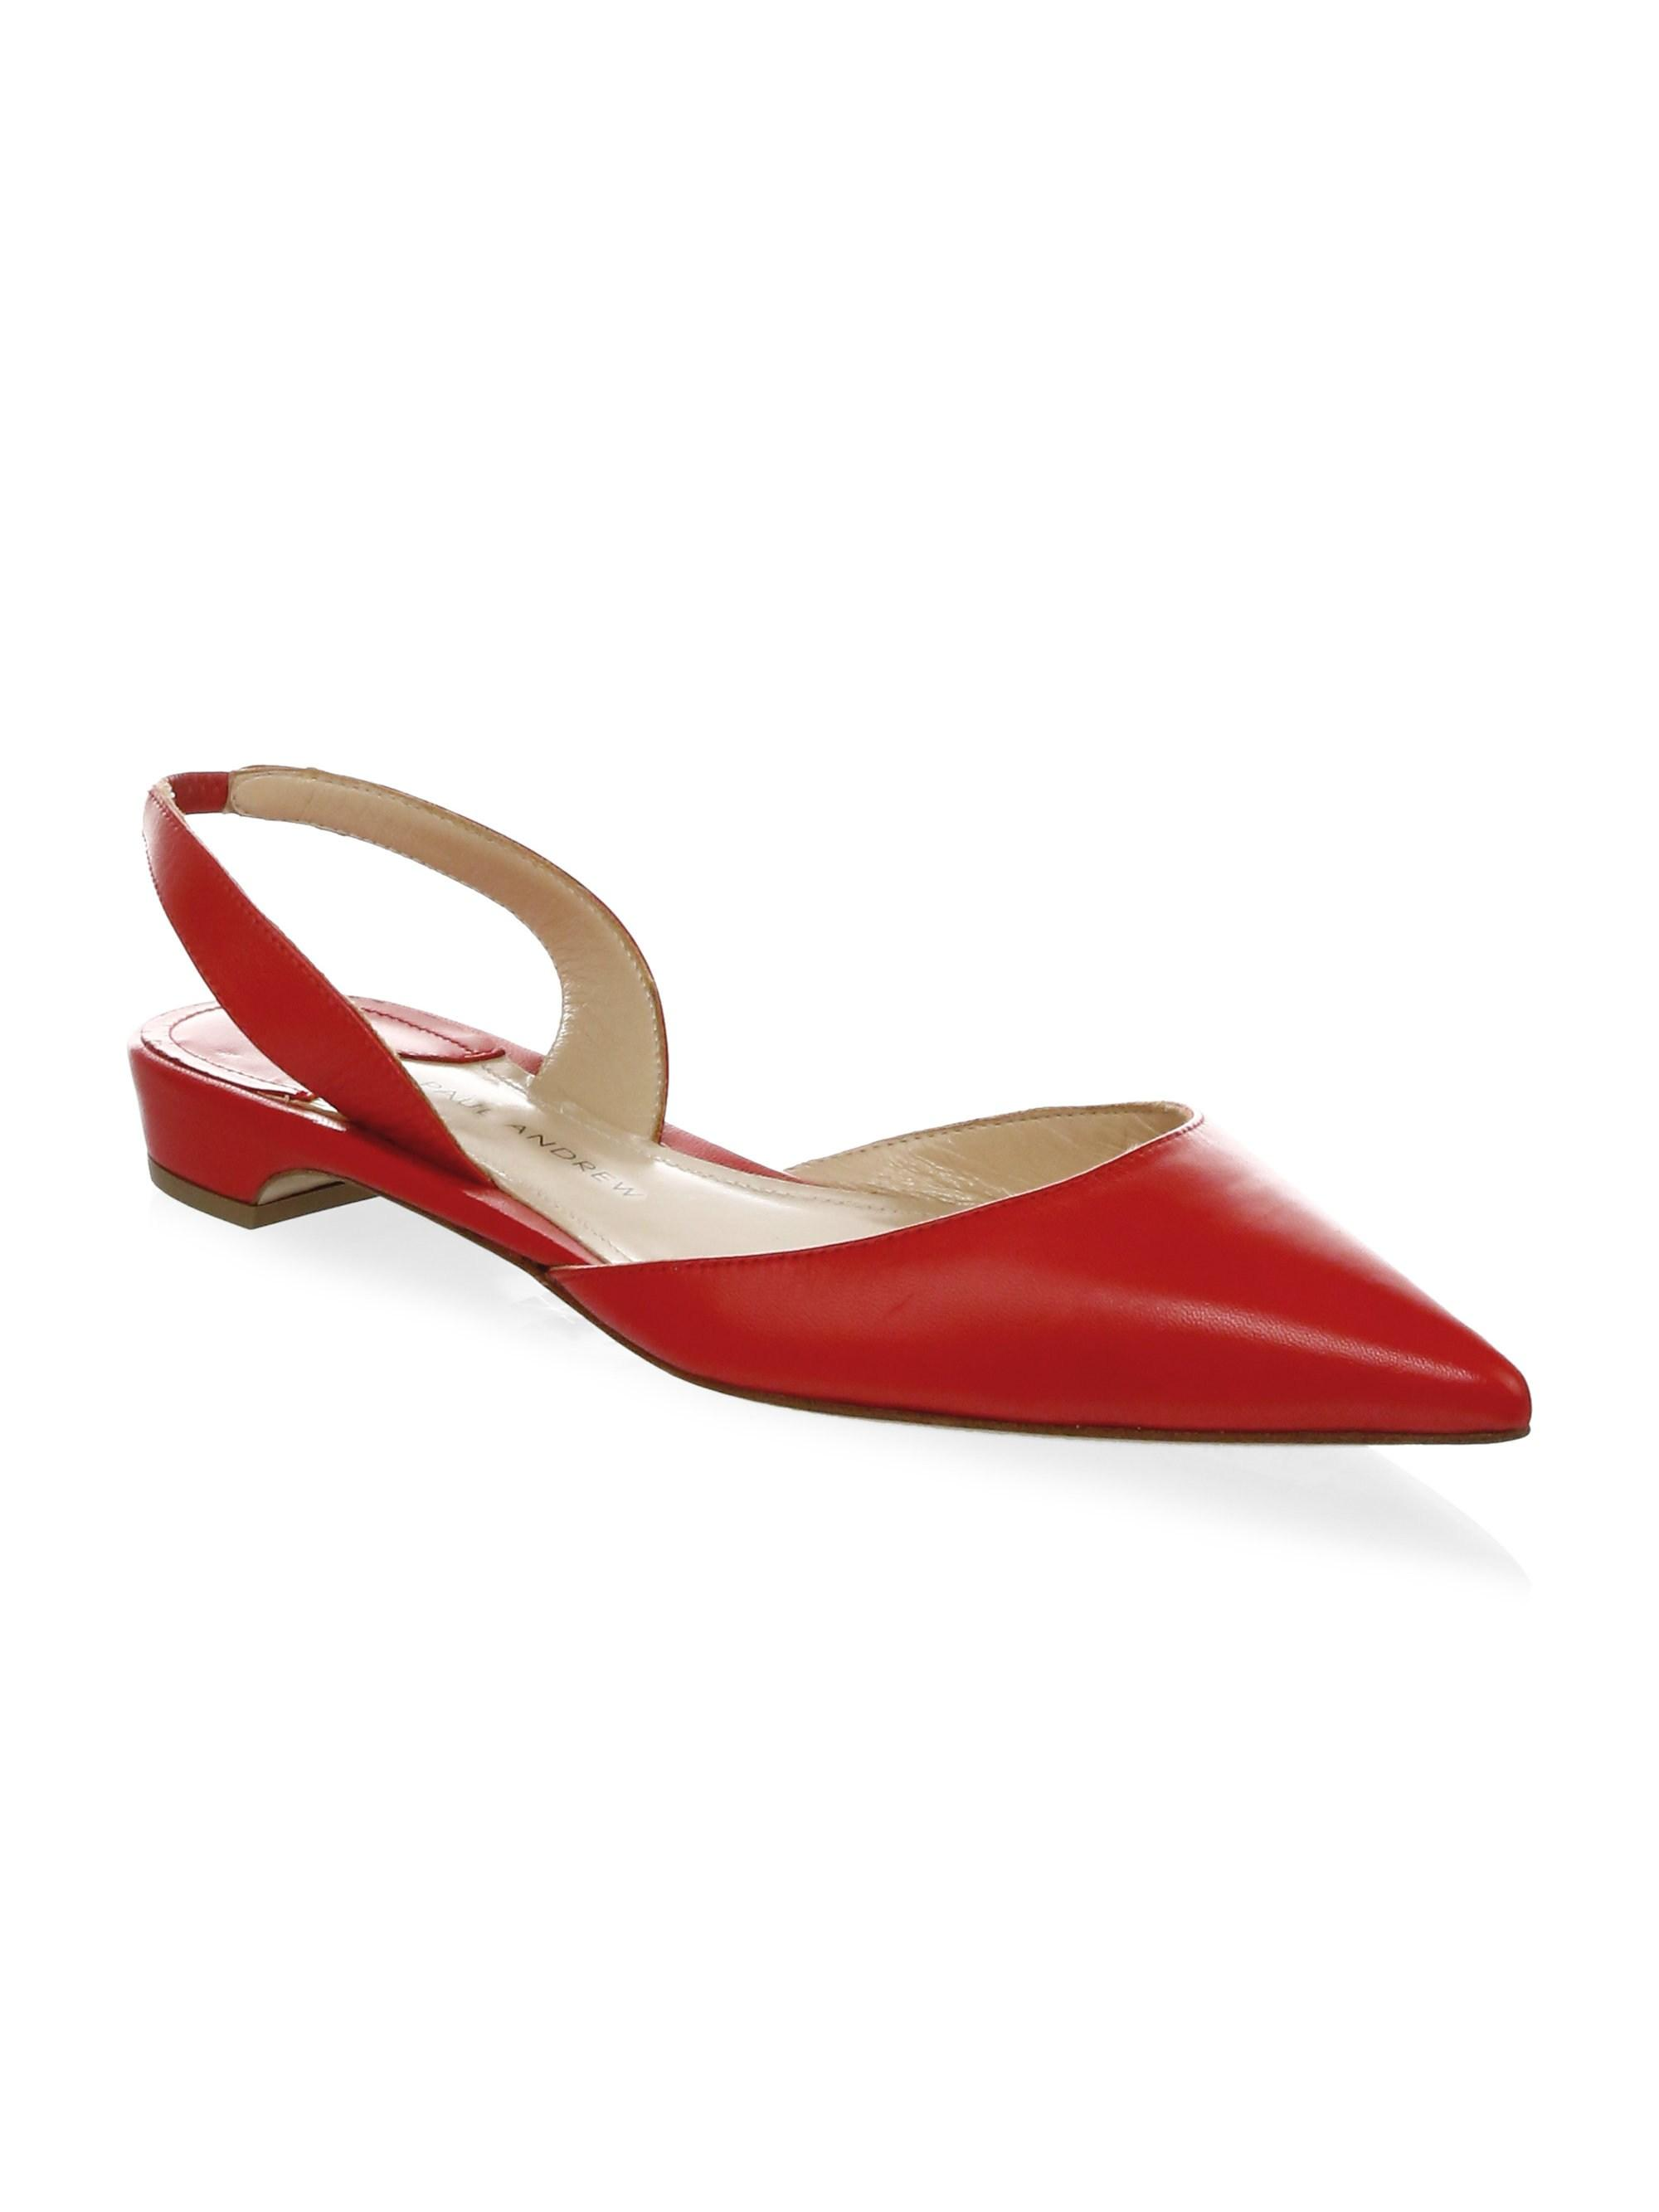 c724bb00e0b Lyst - Paul Andrew Rhea Patent Leather Slingback Flats in Red